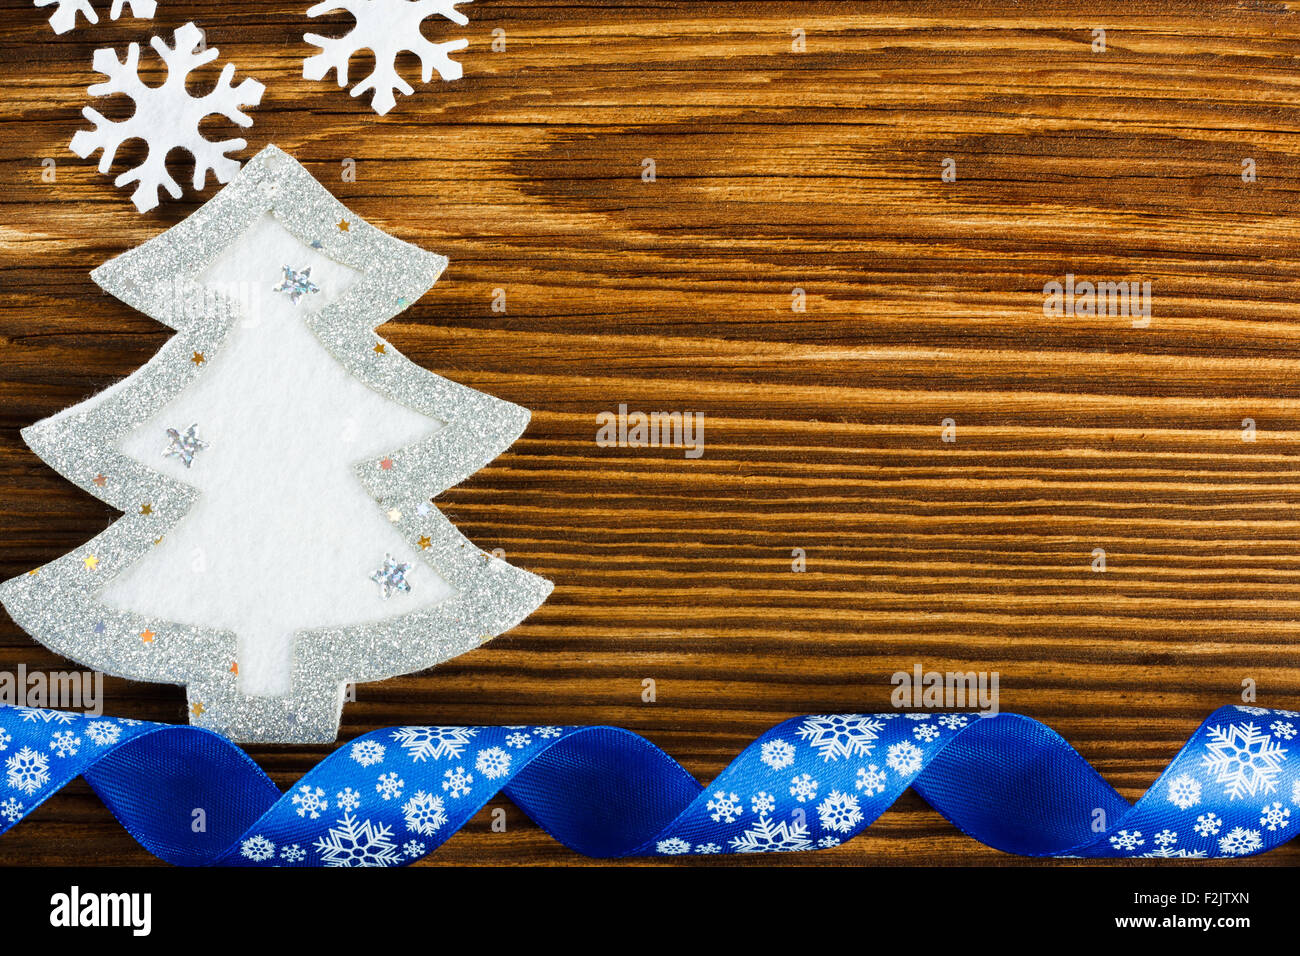 Christmas background - snowflakes, christmas tree and blue ribbon on wooden table - Stock Image